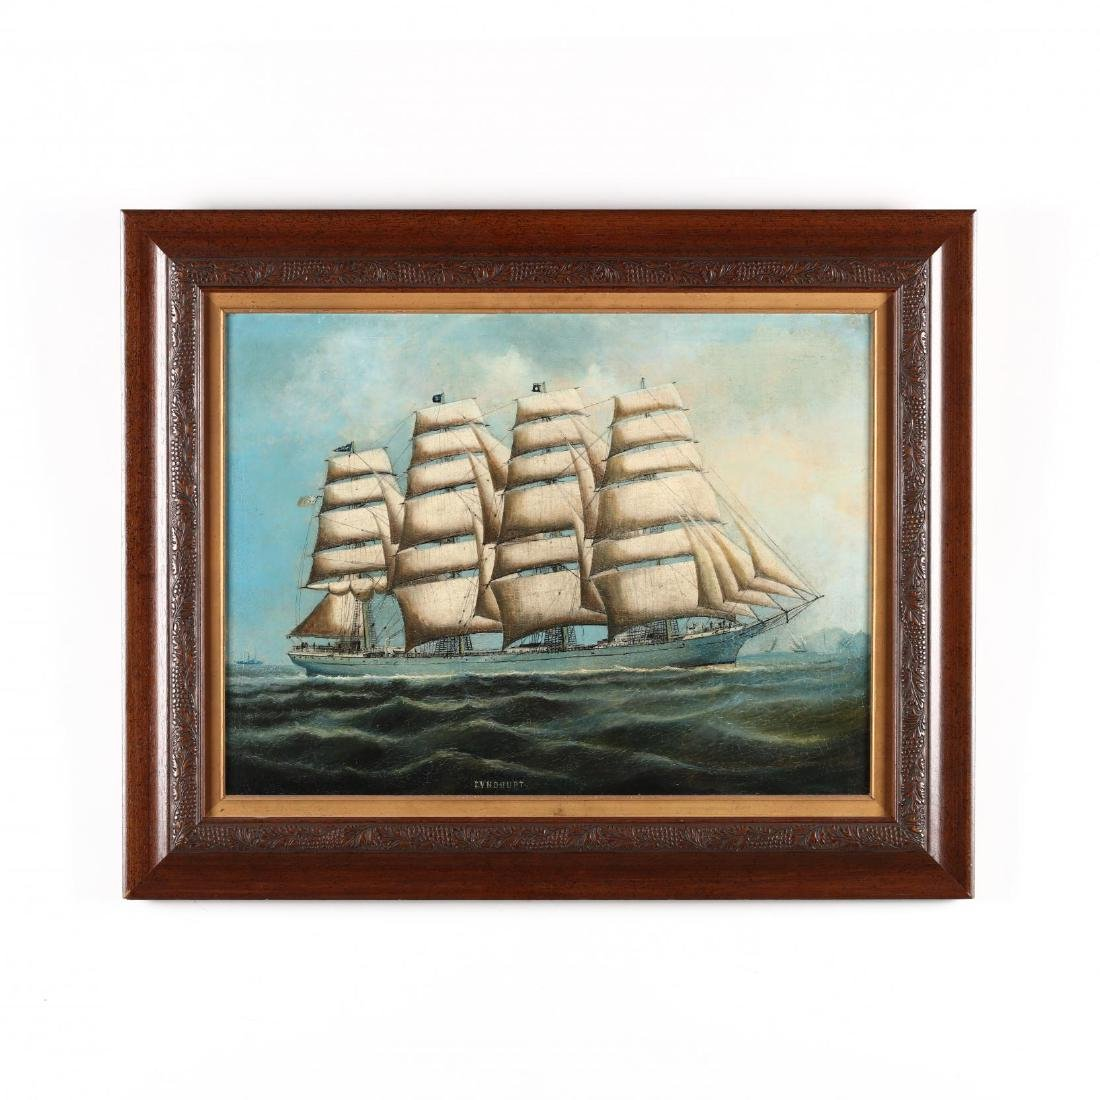 Antique China Trade School Painting,  The Ship